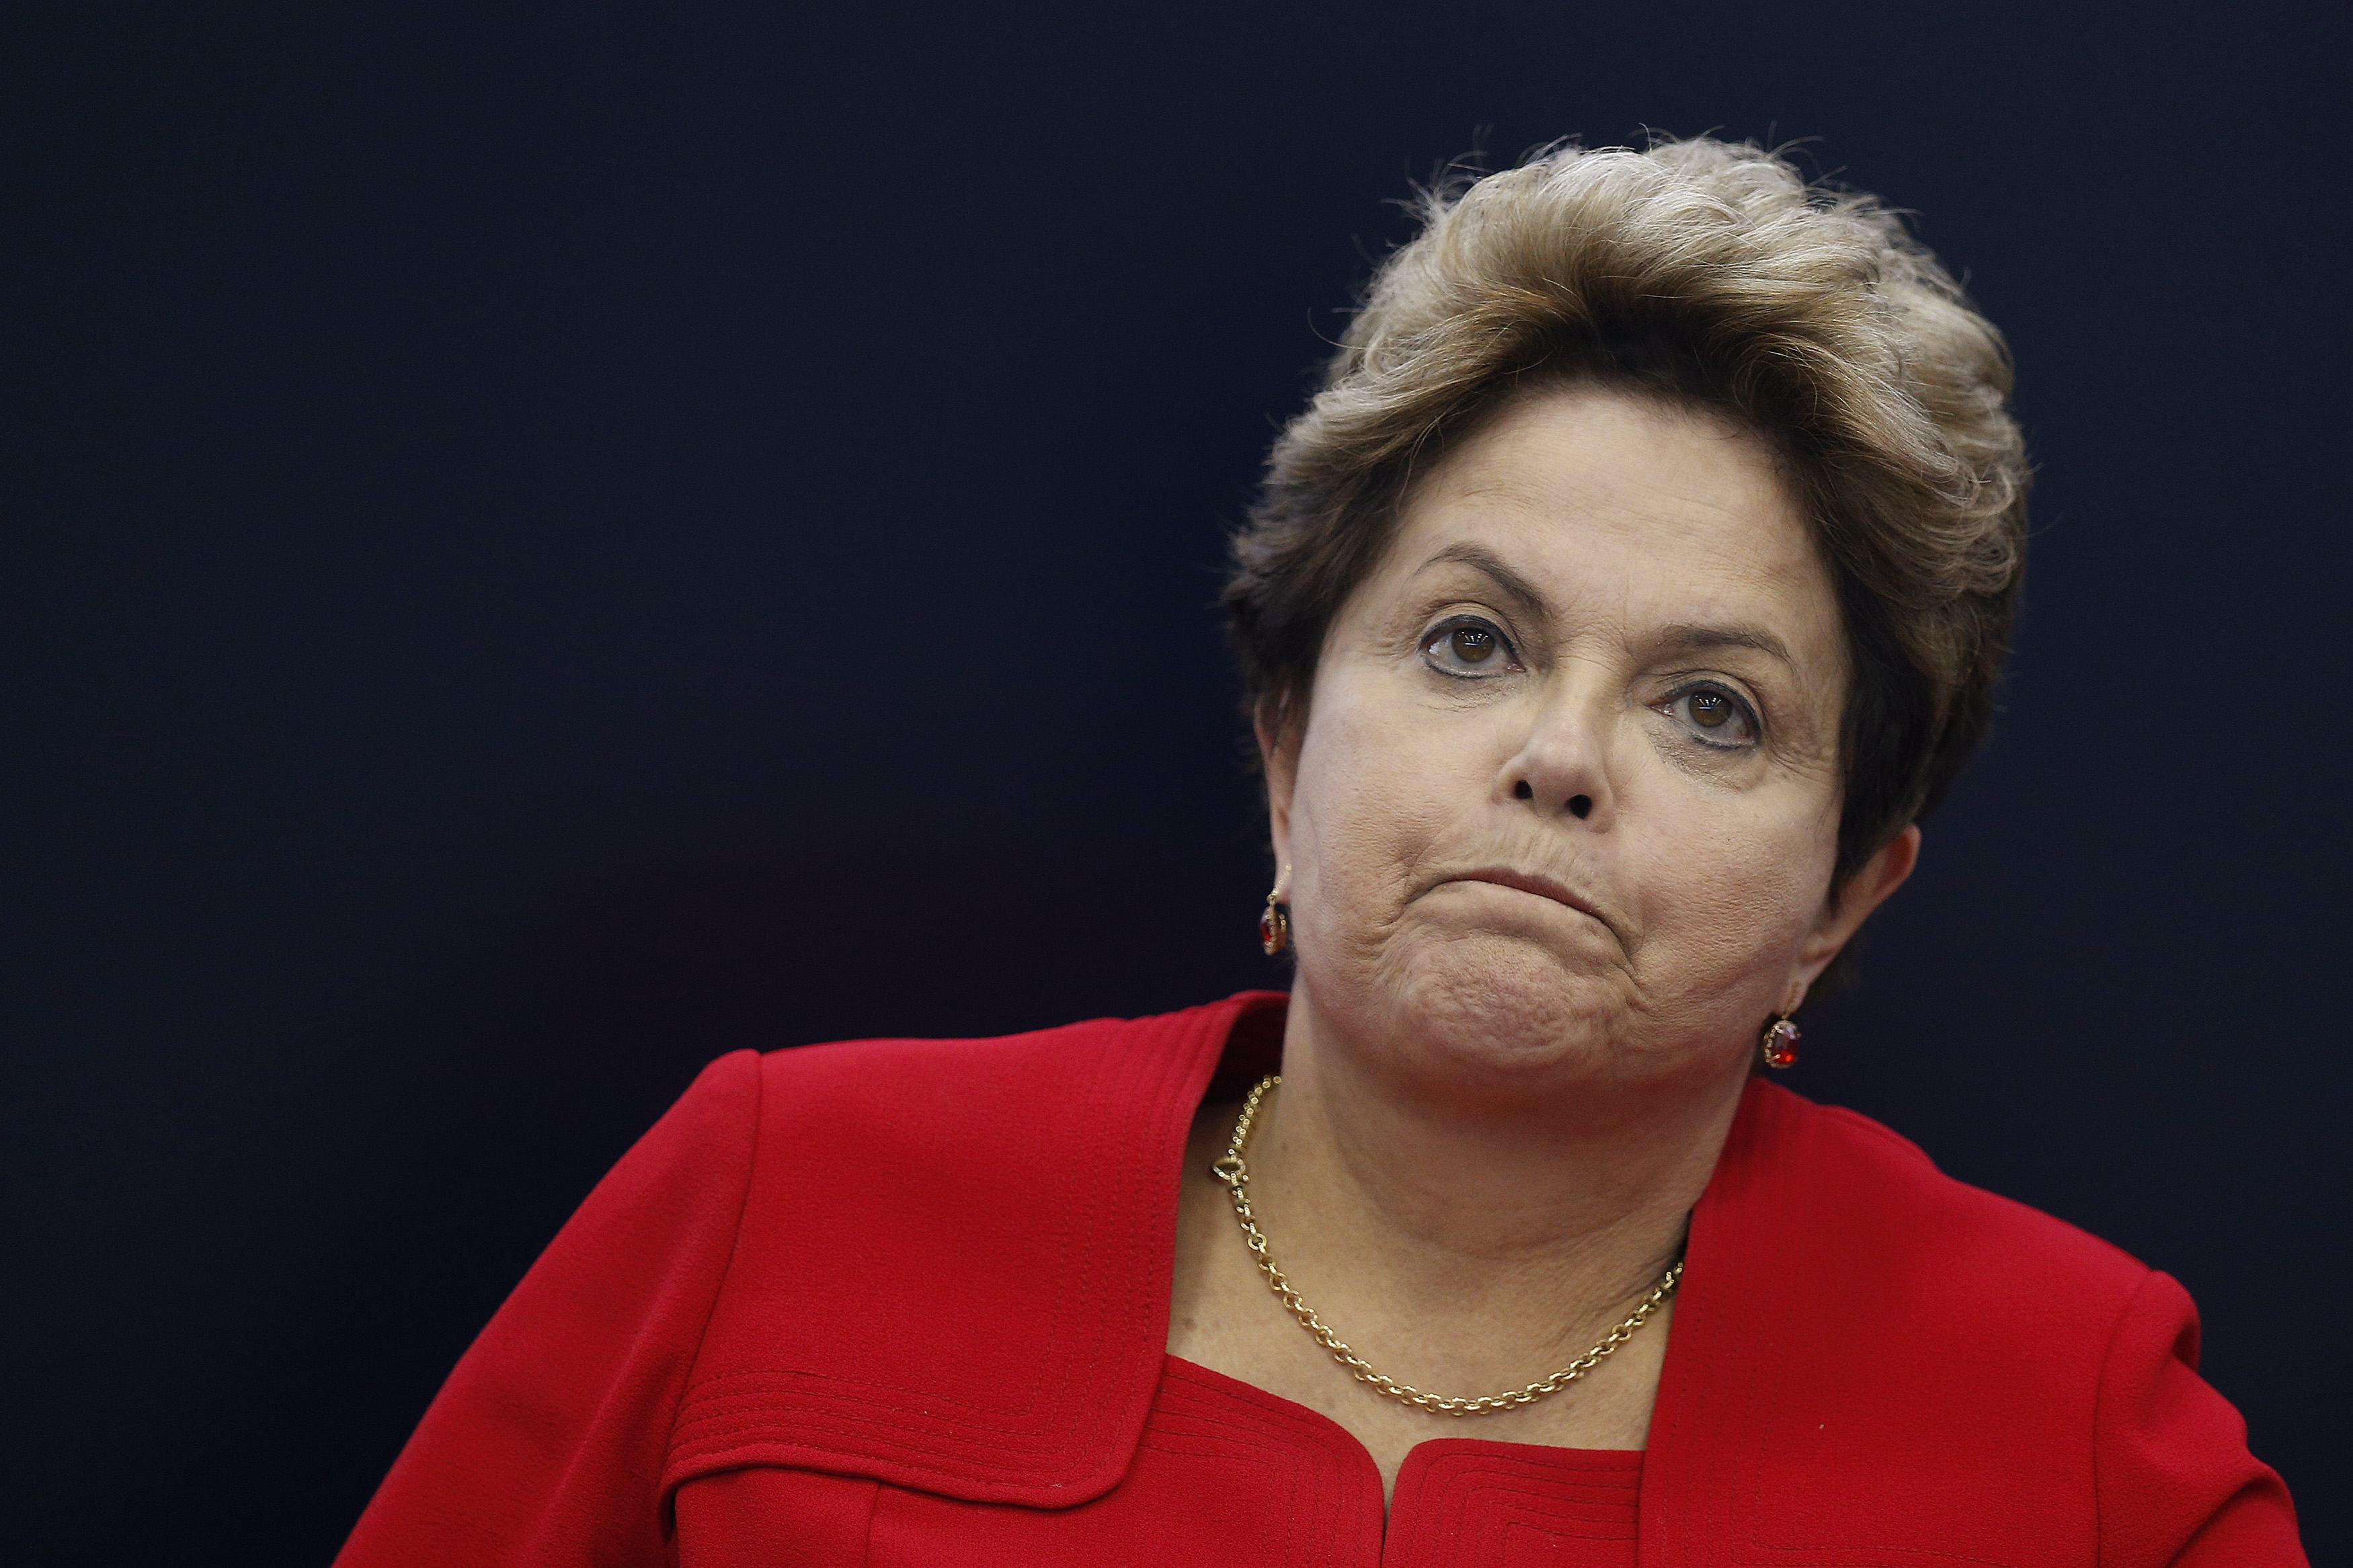 Brazil's Rousseff Vows to Fight against Senate Impeachment Trial